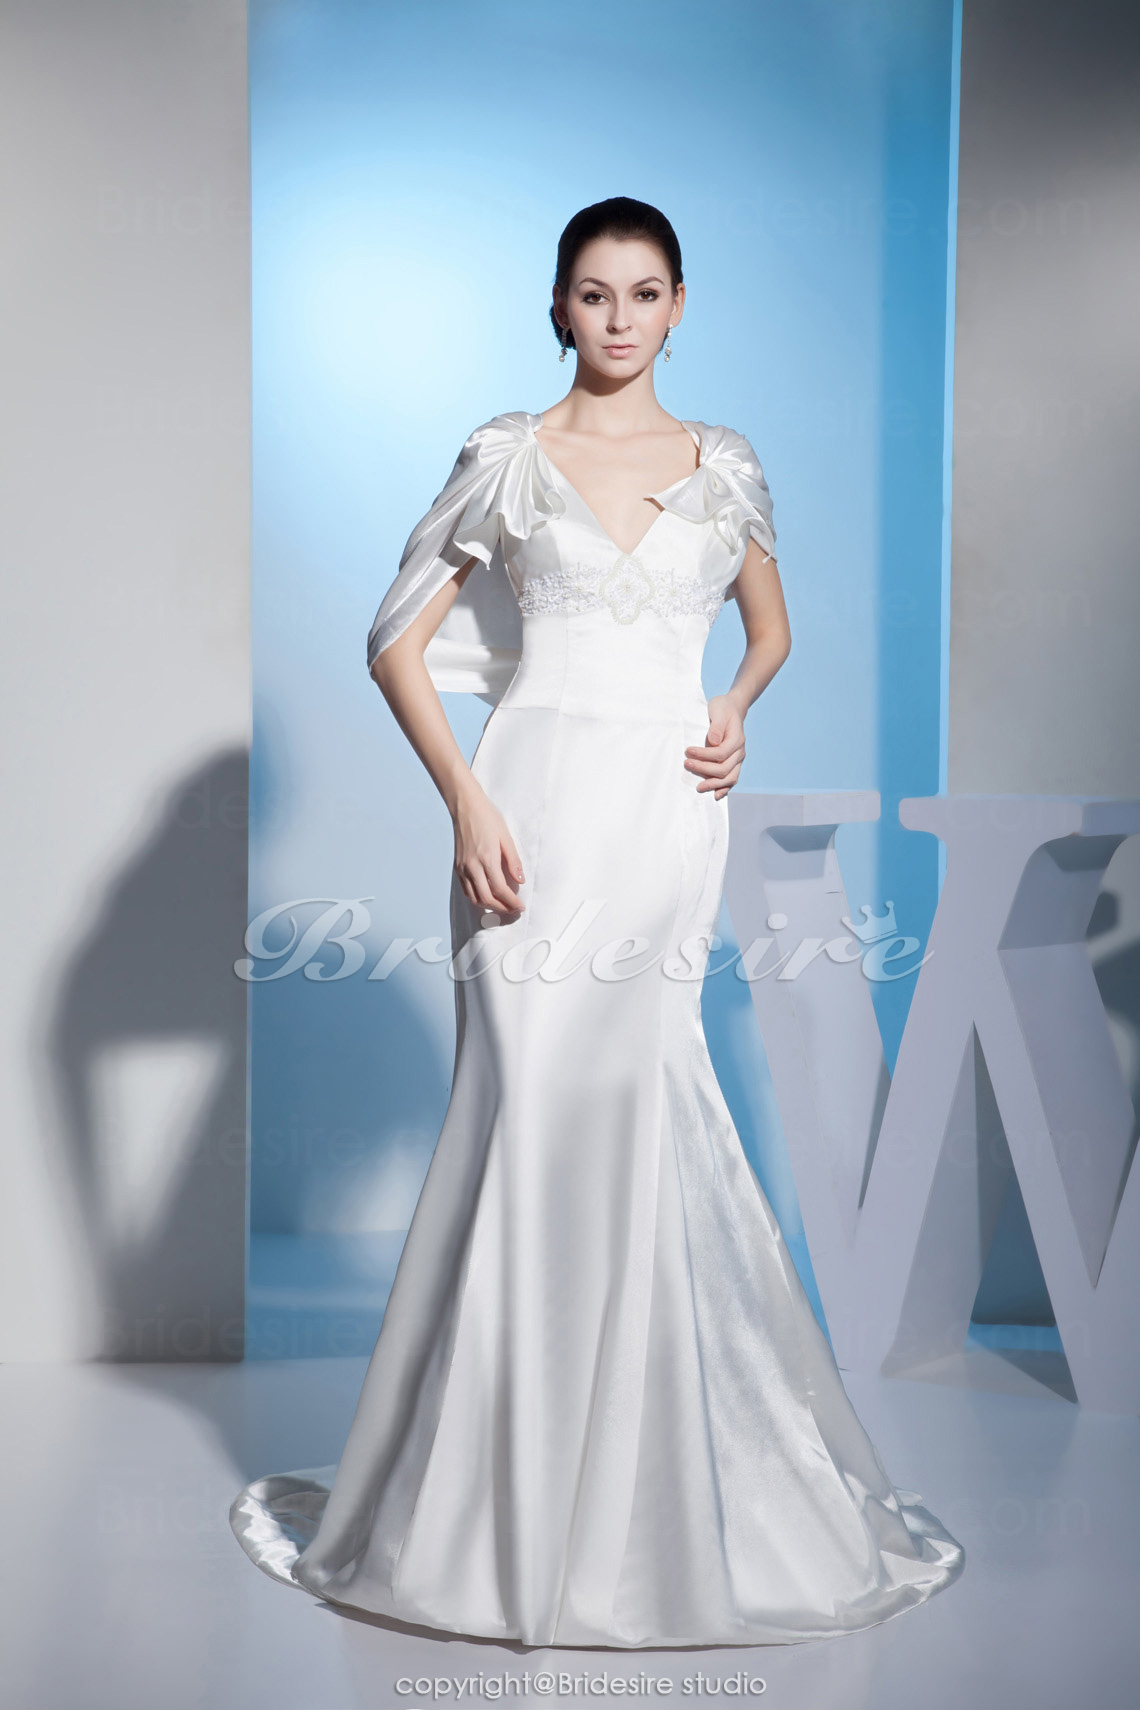 Trumpet/Mermaid V-neck Floor-length Short Sleeve Satin Wedding Dress